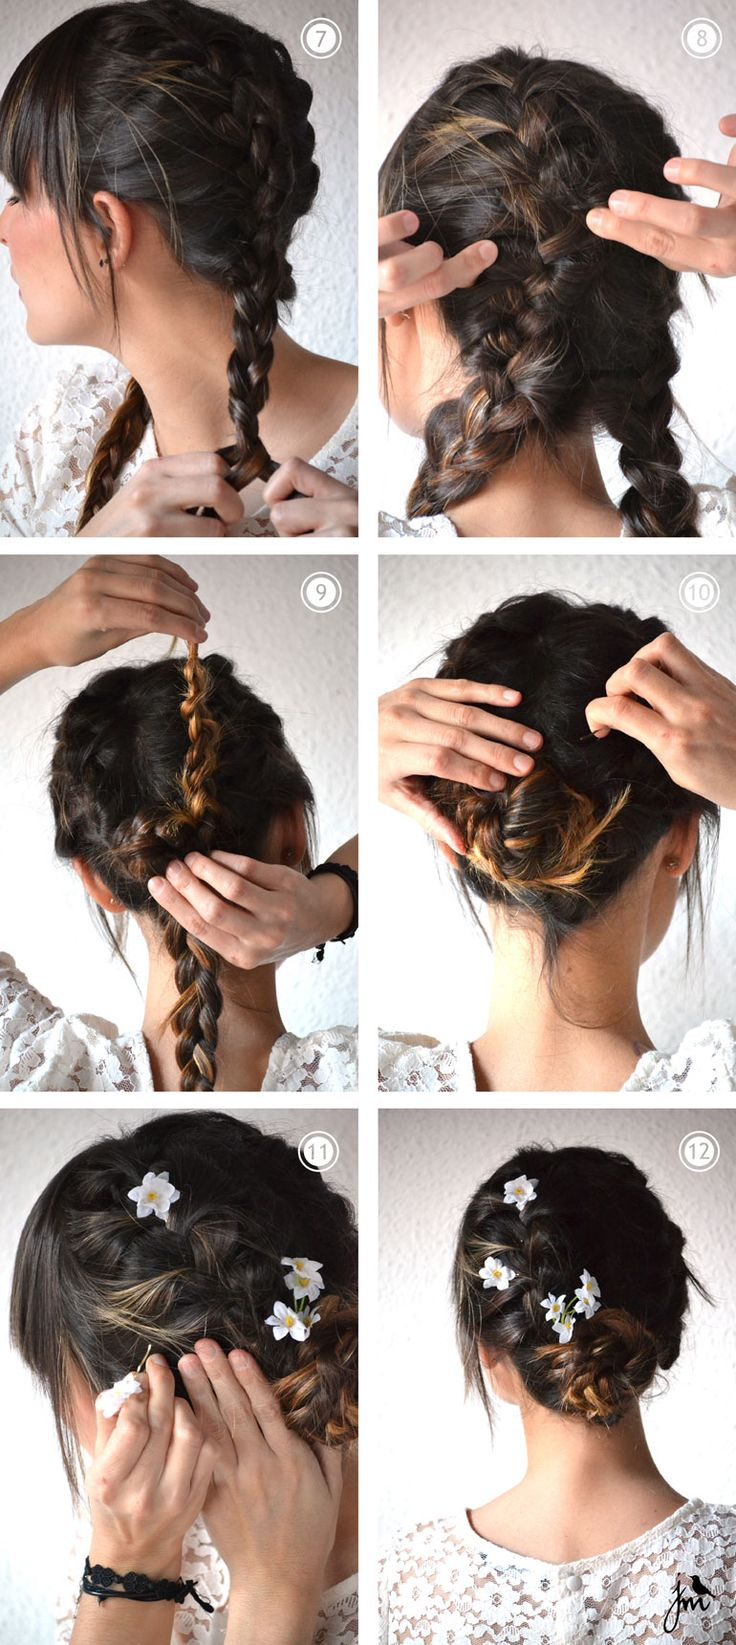 Join the Mood: BOHEMIAN WEDDING HAIR – Well, I would use that for Spring and Summer days, not only wedding ;)